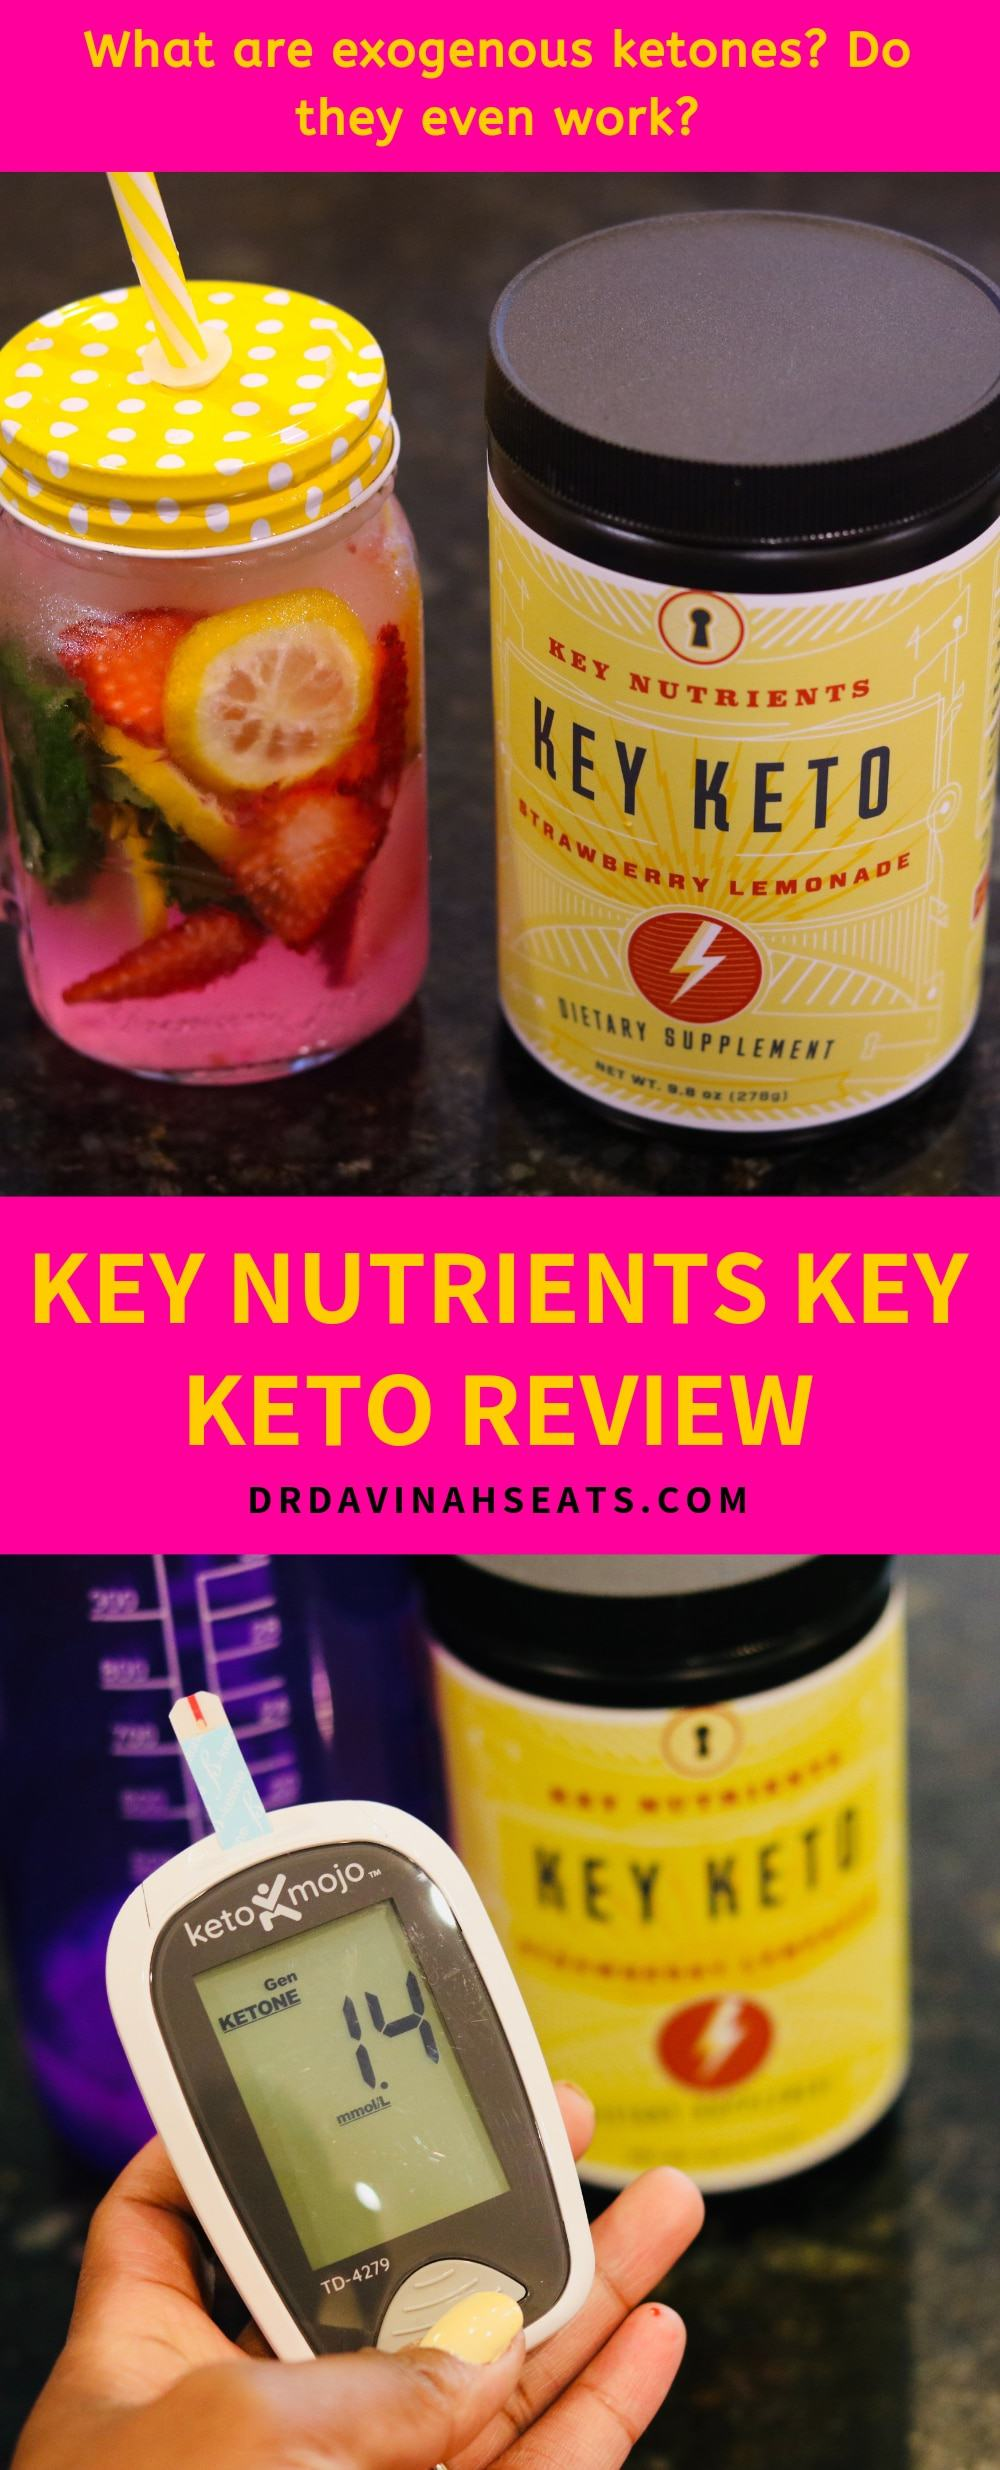 A Pinterest image for Key Keto by Key Nutrients.